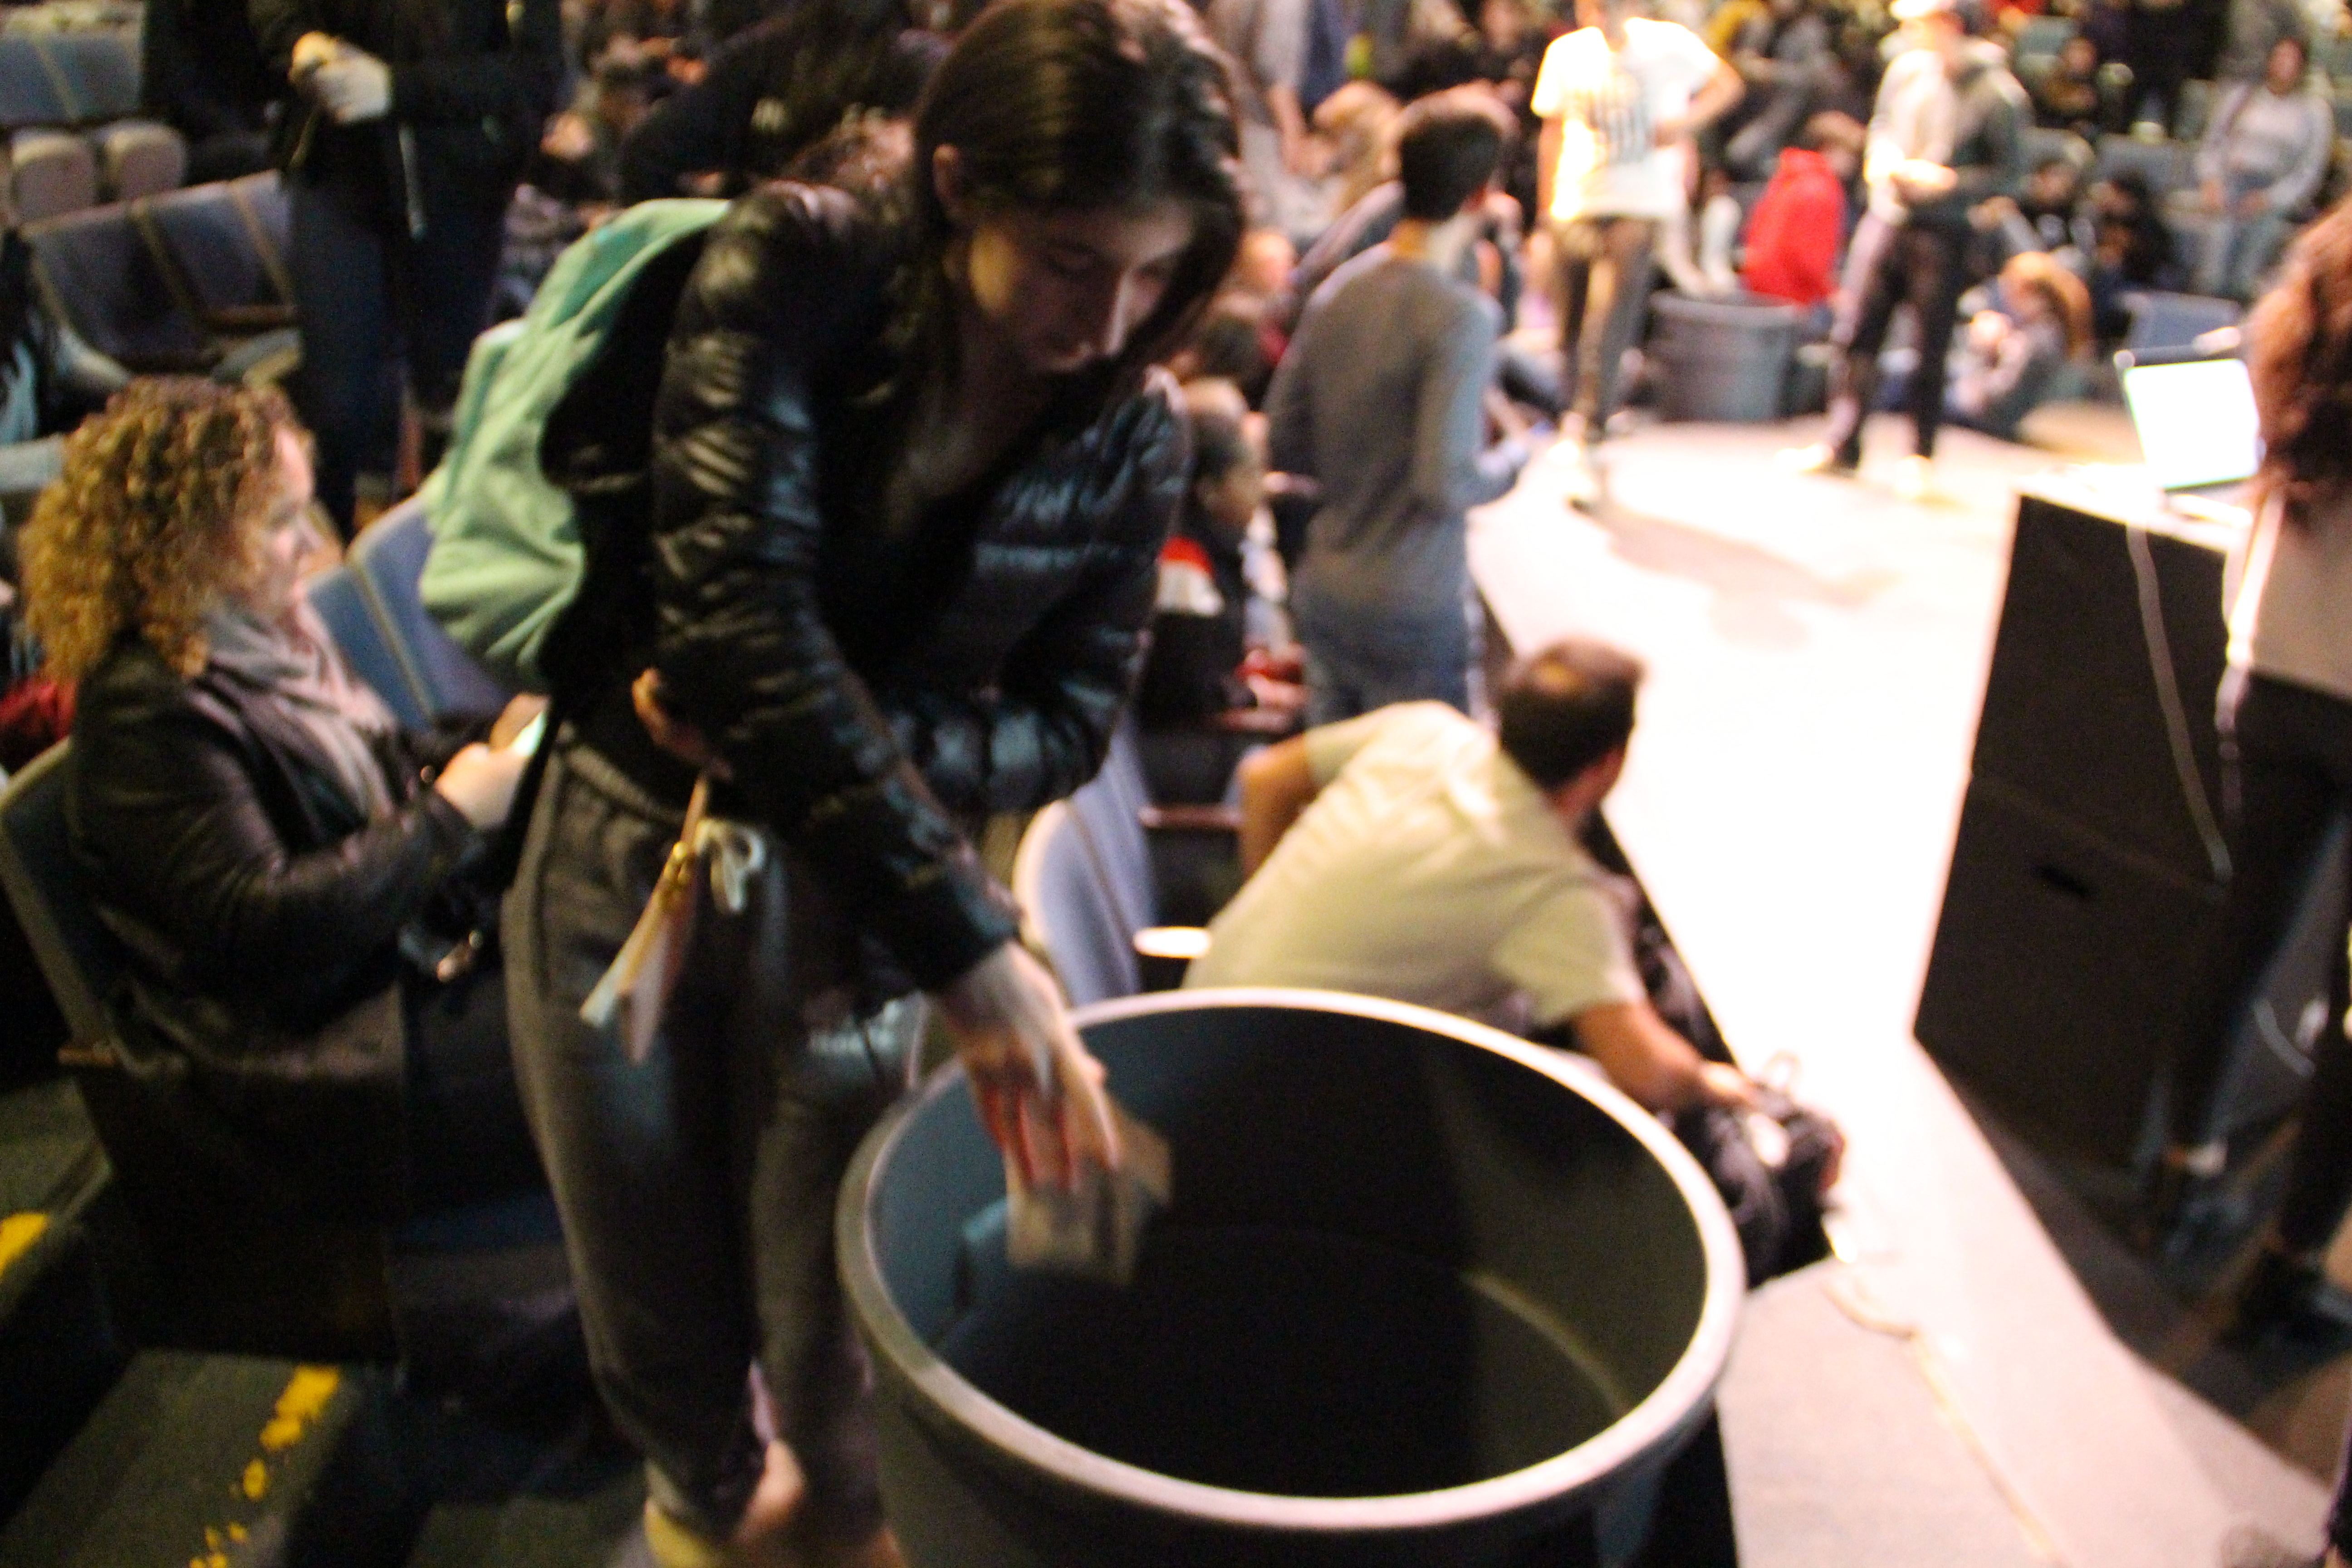 During the Miracle Minute, students were encouraged to donate as much as possible in 60 seconds. Photo by: GUY GINSBERG